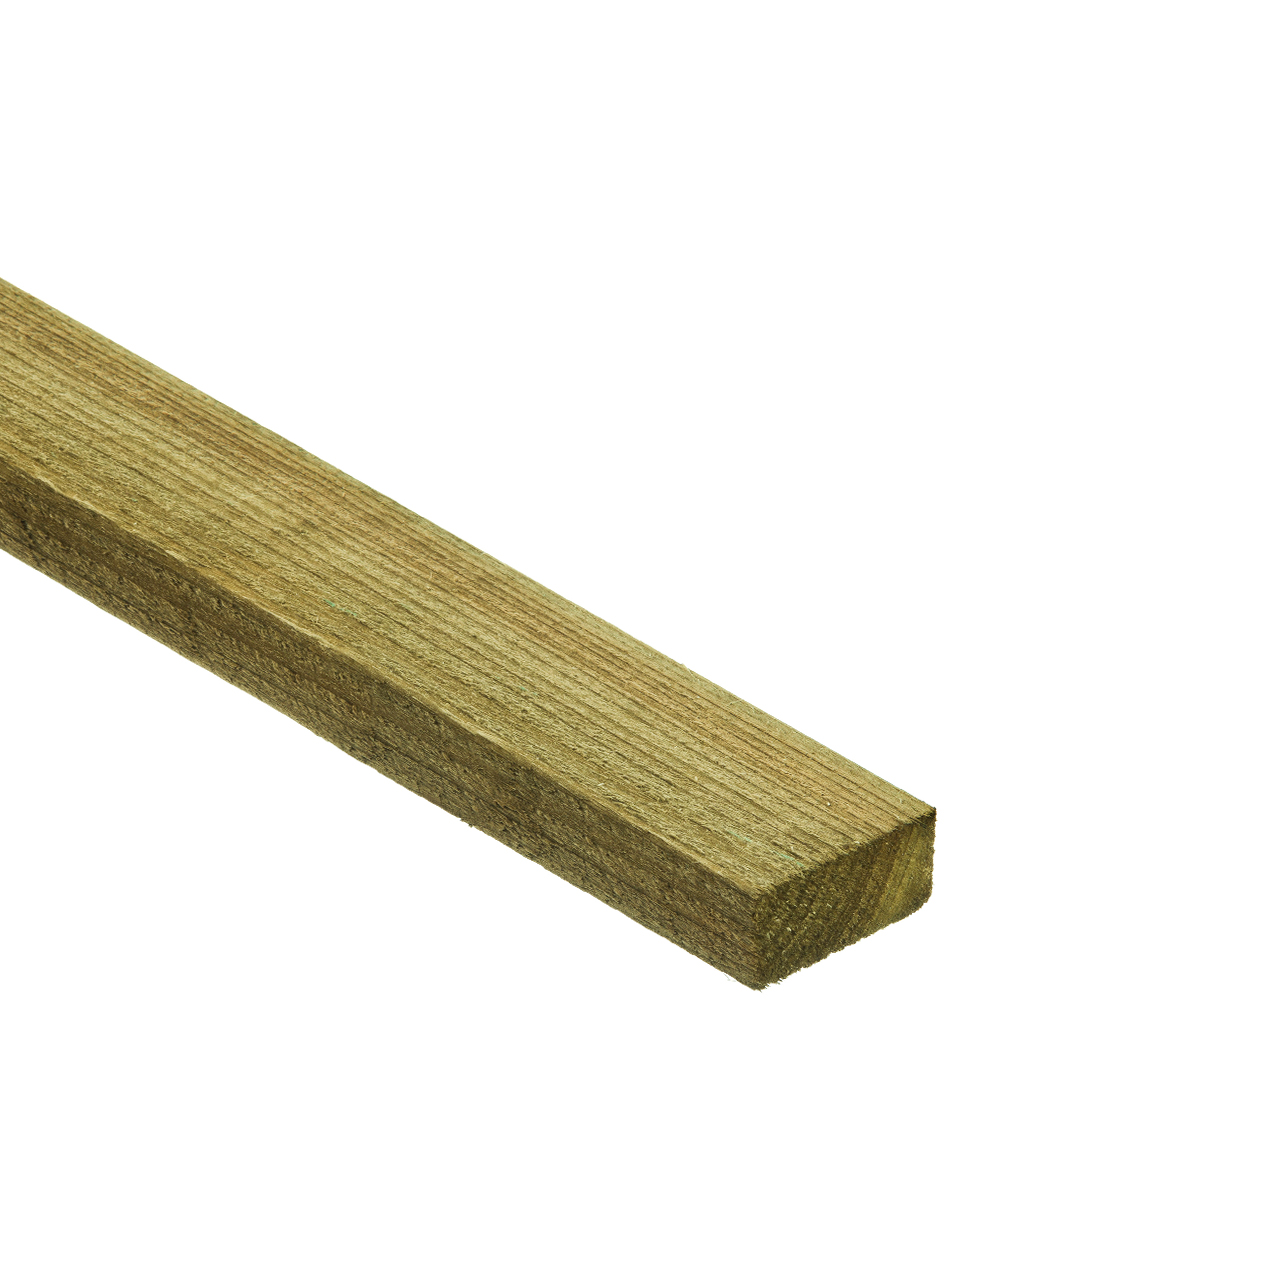 47mm x 75mm Rough Sawn Carcassing Green Treated image 0